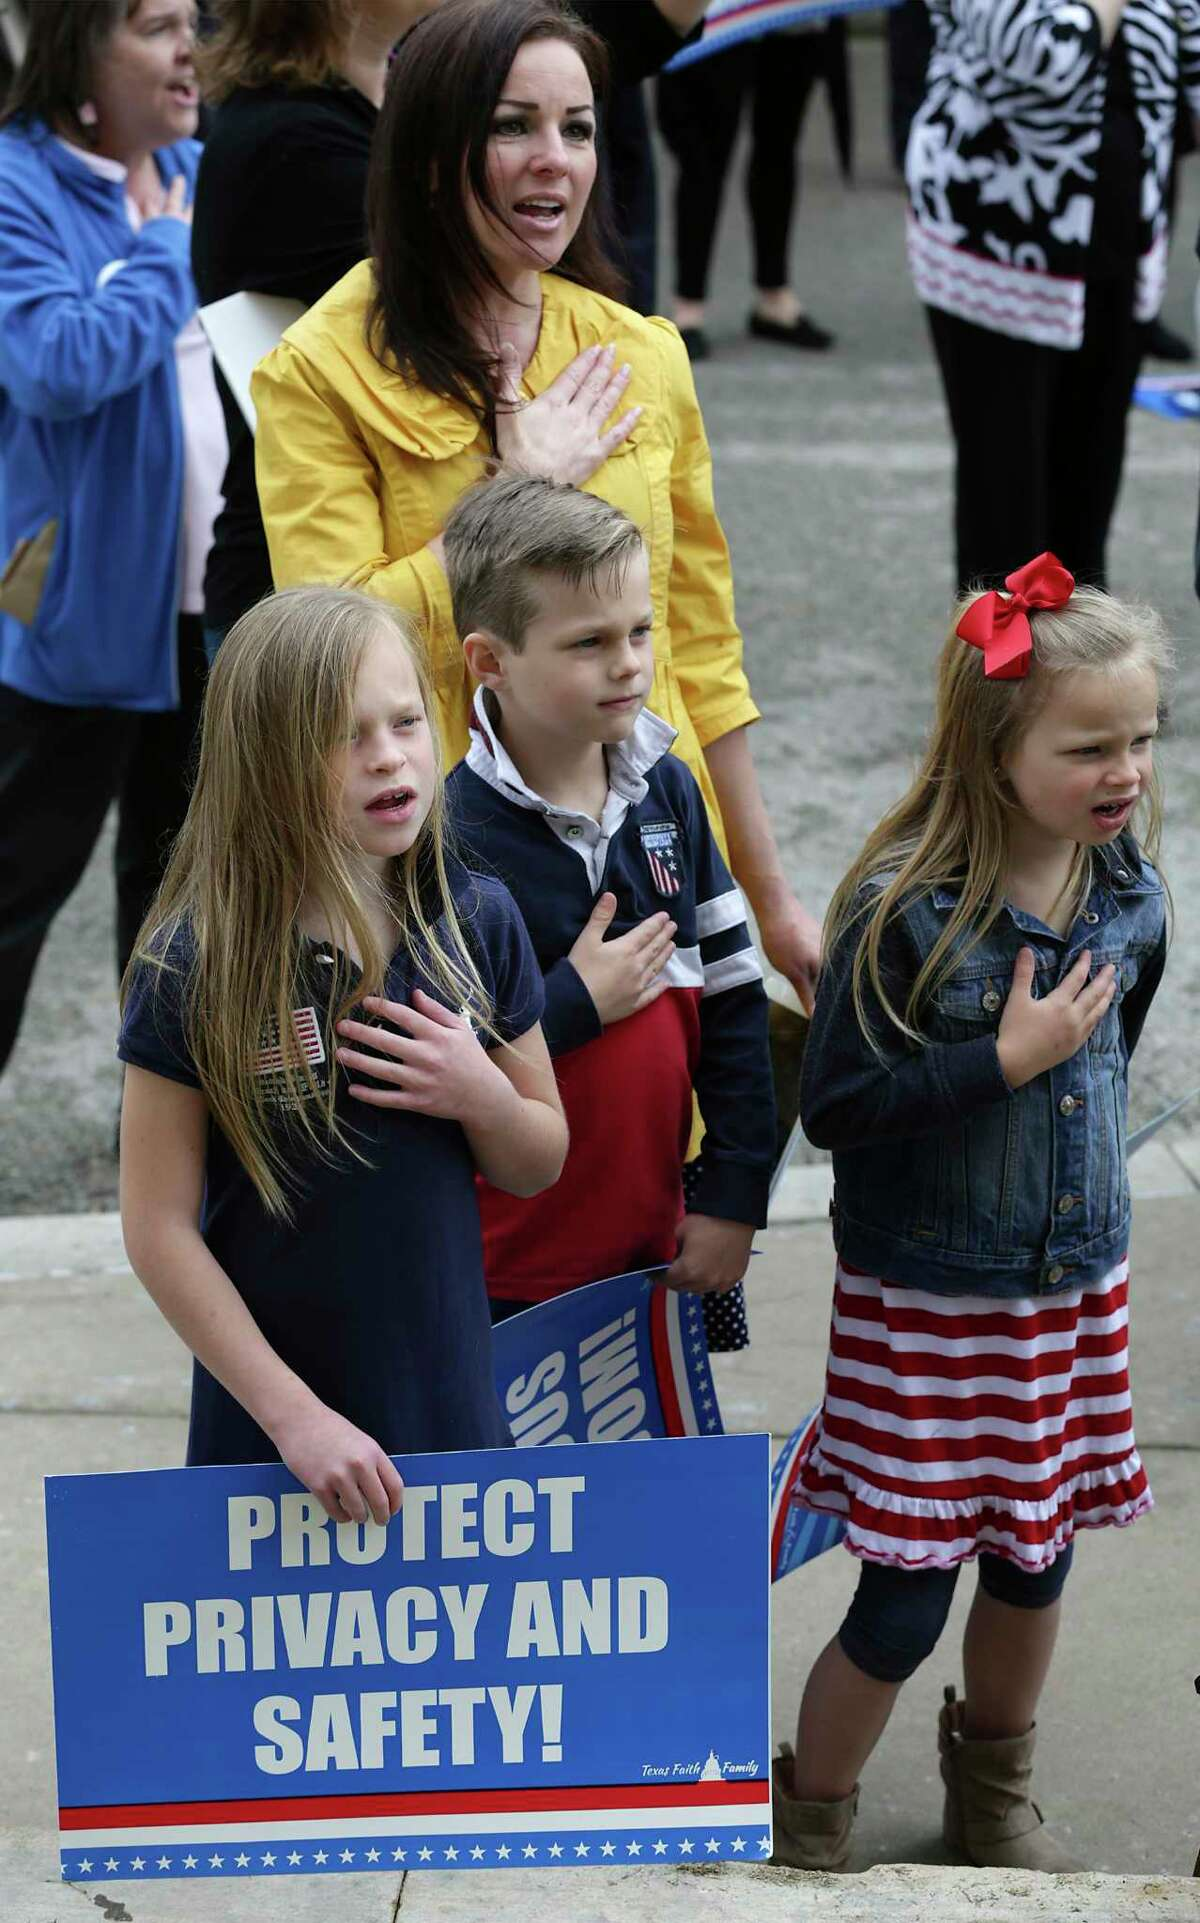 Nikki Kelton, above, and her kids Avary, 8, left to right, River, 7, and Ella Grace, 5, sing the National Anthem at the Faith and Family Rally at the State Capitol in Austin, TX on Thursday, March 16, 2017.